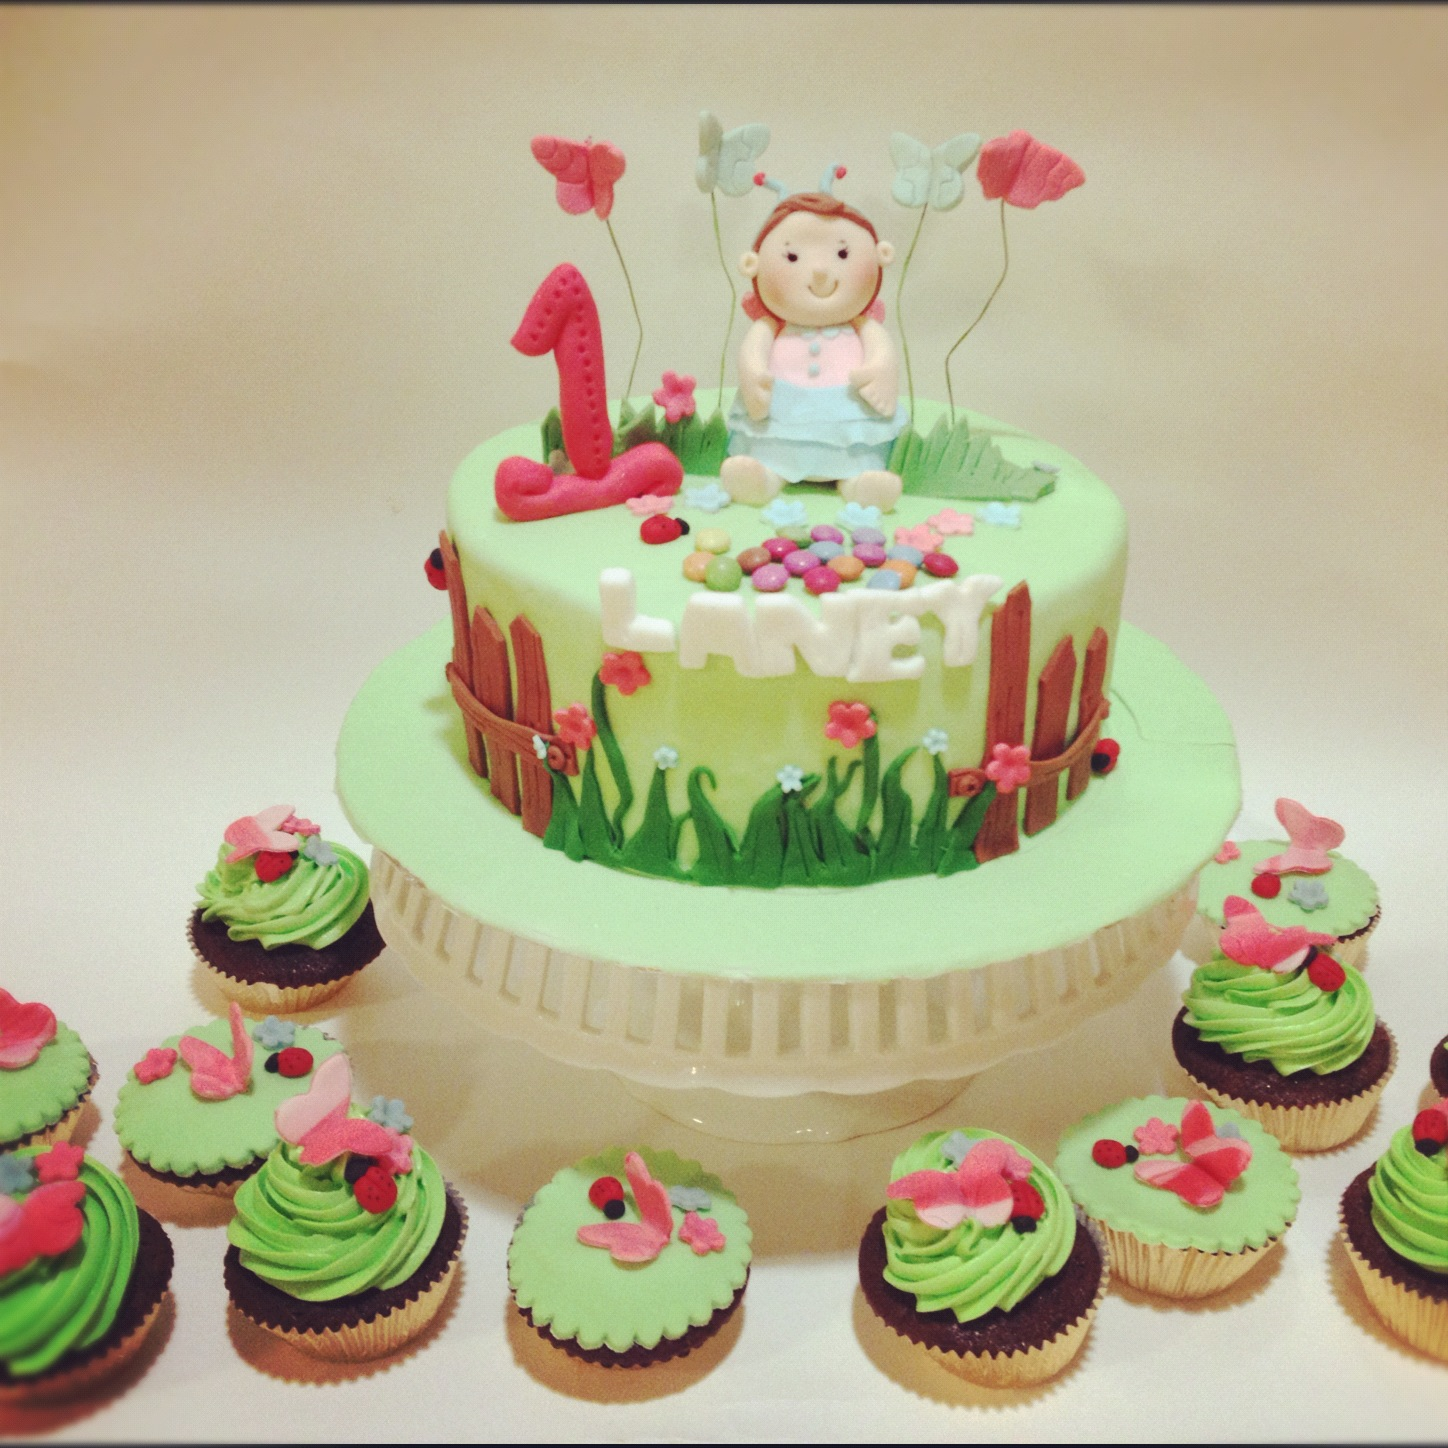 Birthday cake ideas garden image inspiration of cake and for Gardening 80th birthday cake